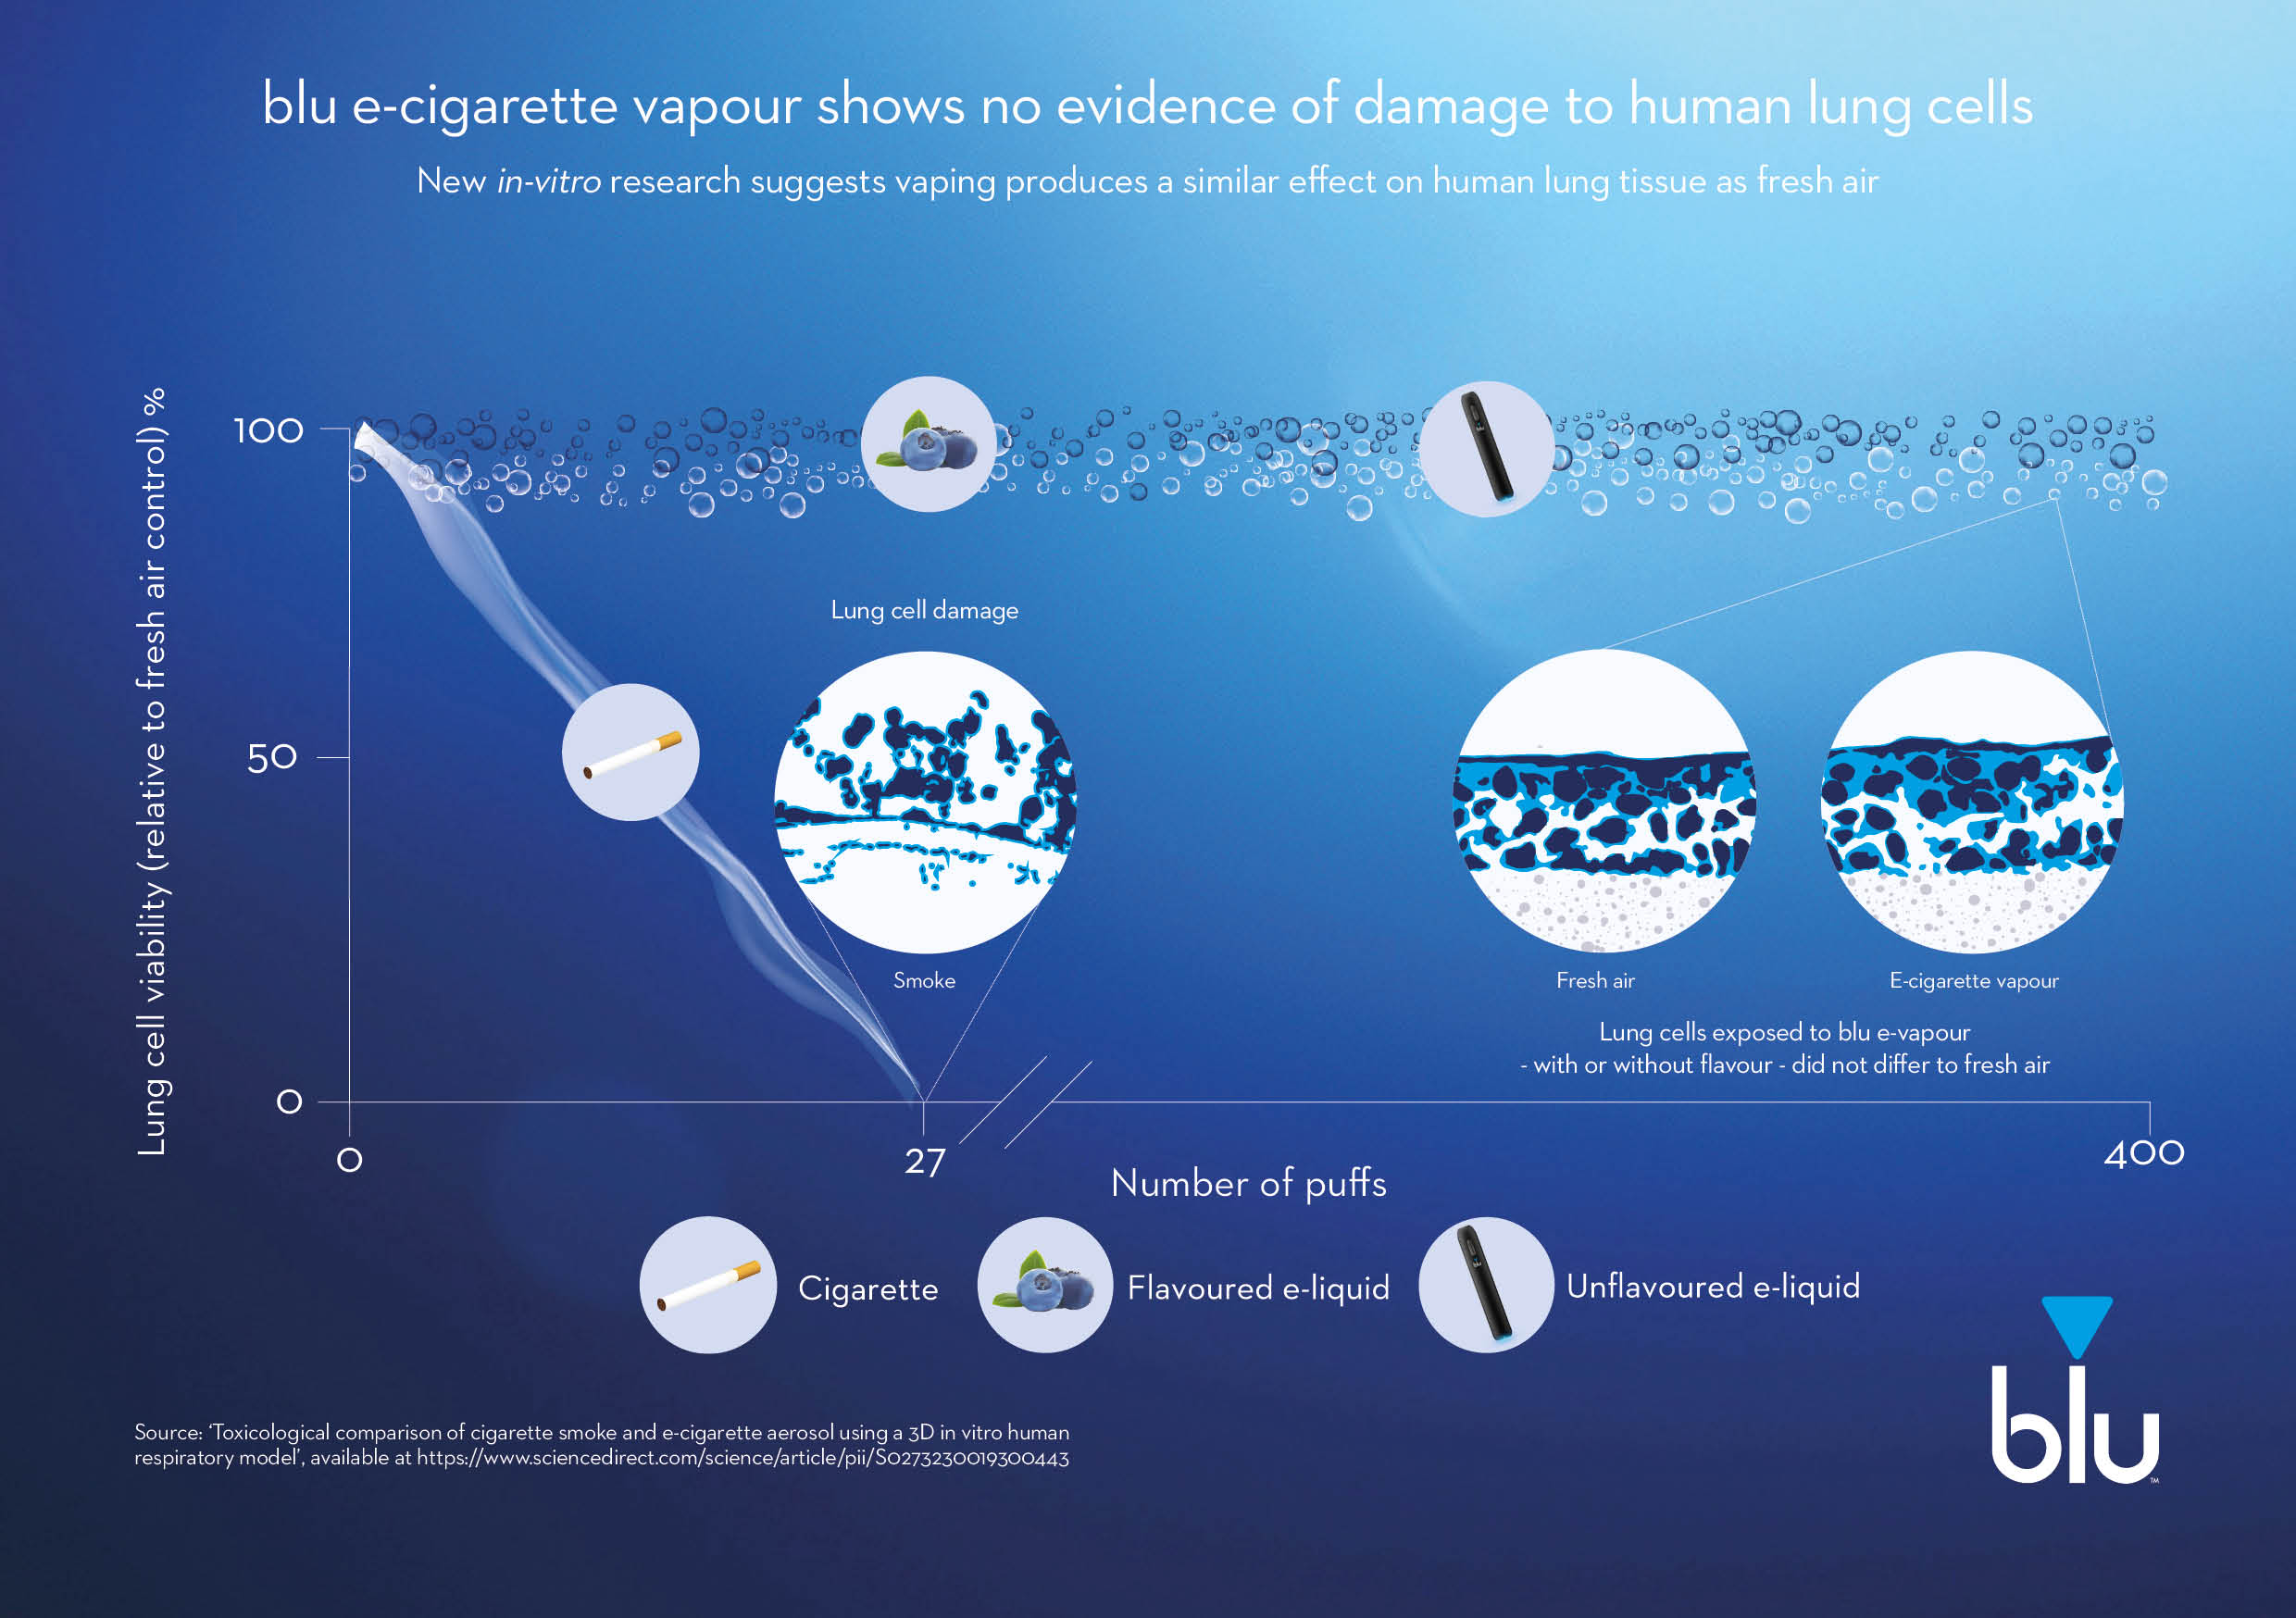 vapour-shows-no-evidence-of-damage-to-lung-cells